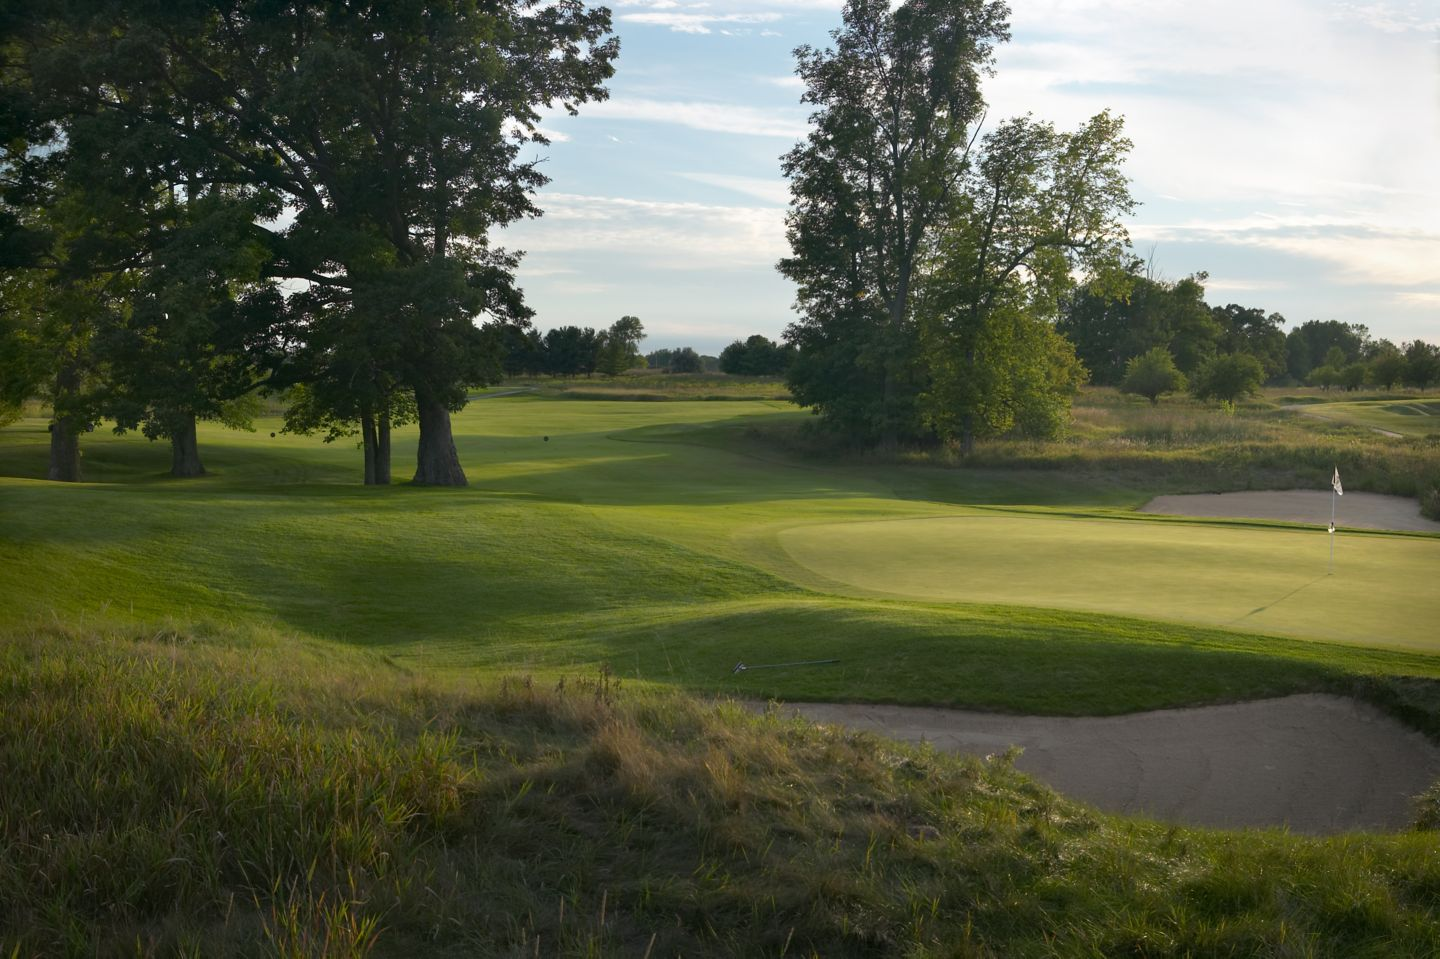 Hole 5 of the Meadow Valleys course with two large tree strands on each side of the fairway.